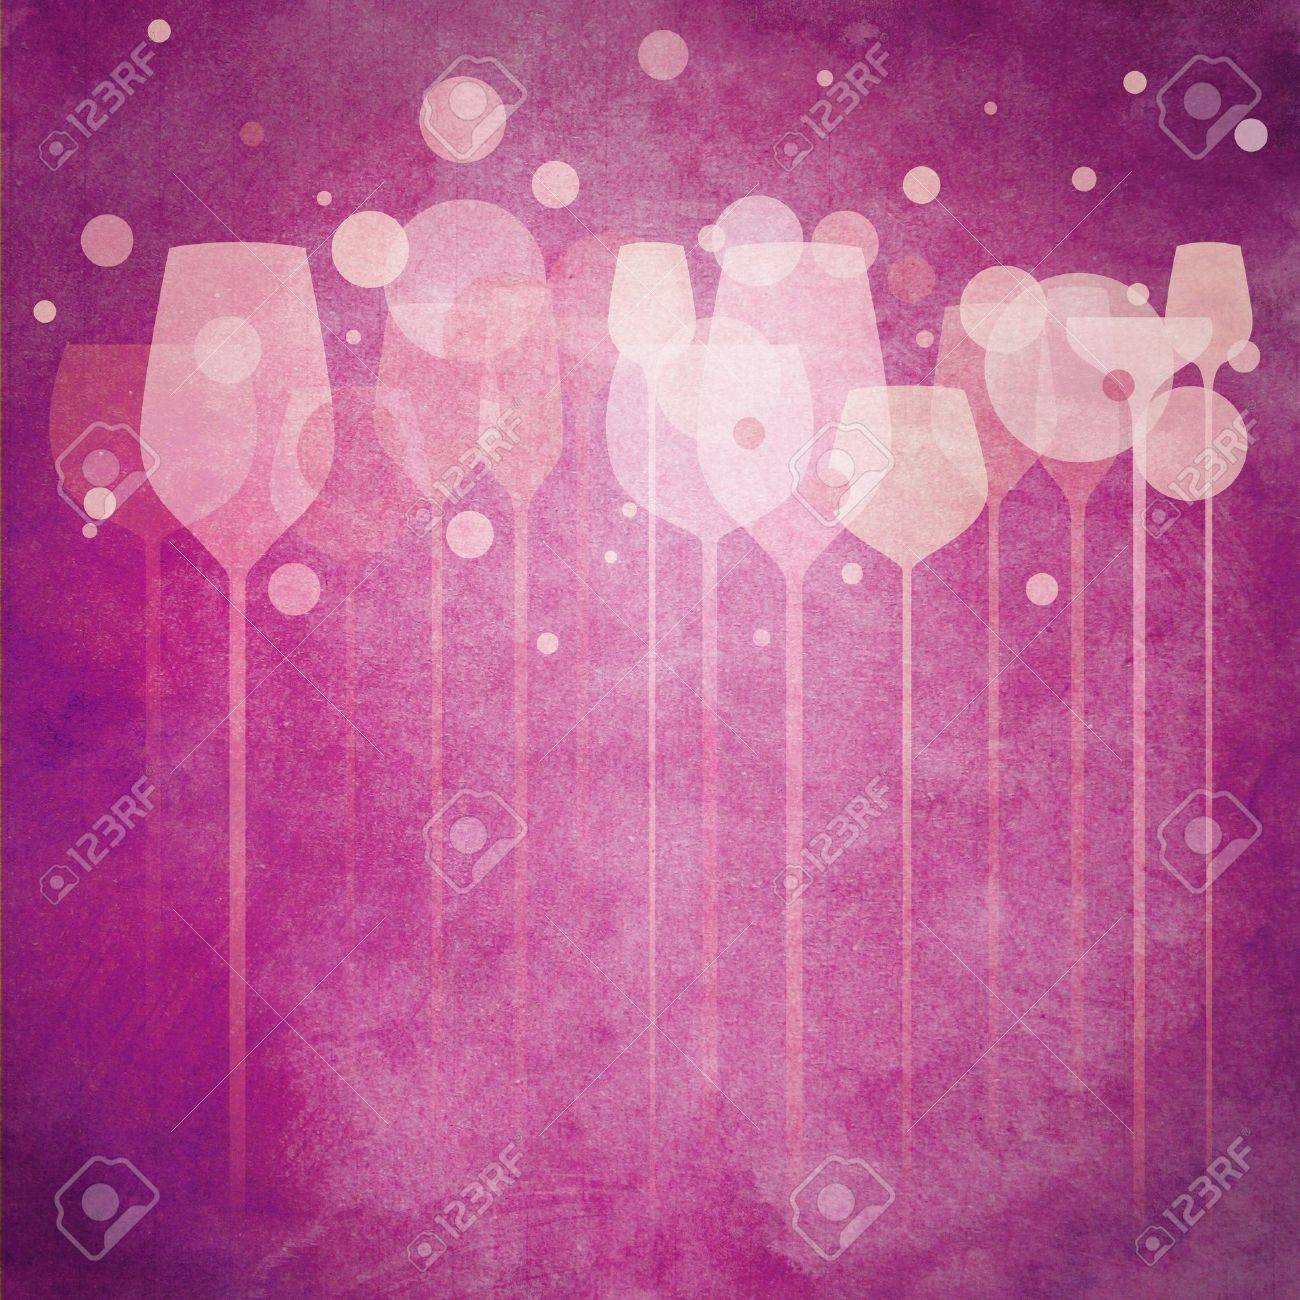 A funky illustration of various alcohol drink glasses, perfect for menu, poster and cover design etc. Stock Illustration - 13830223